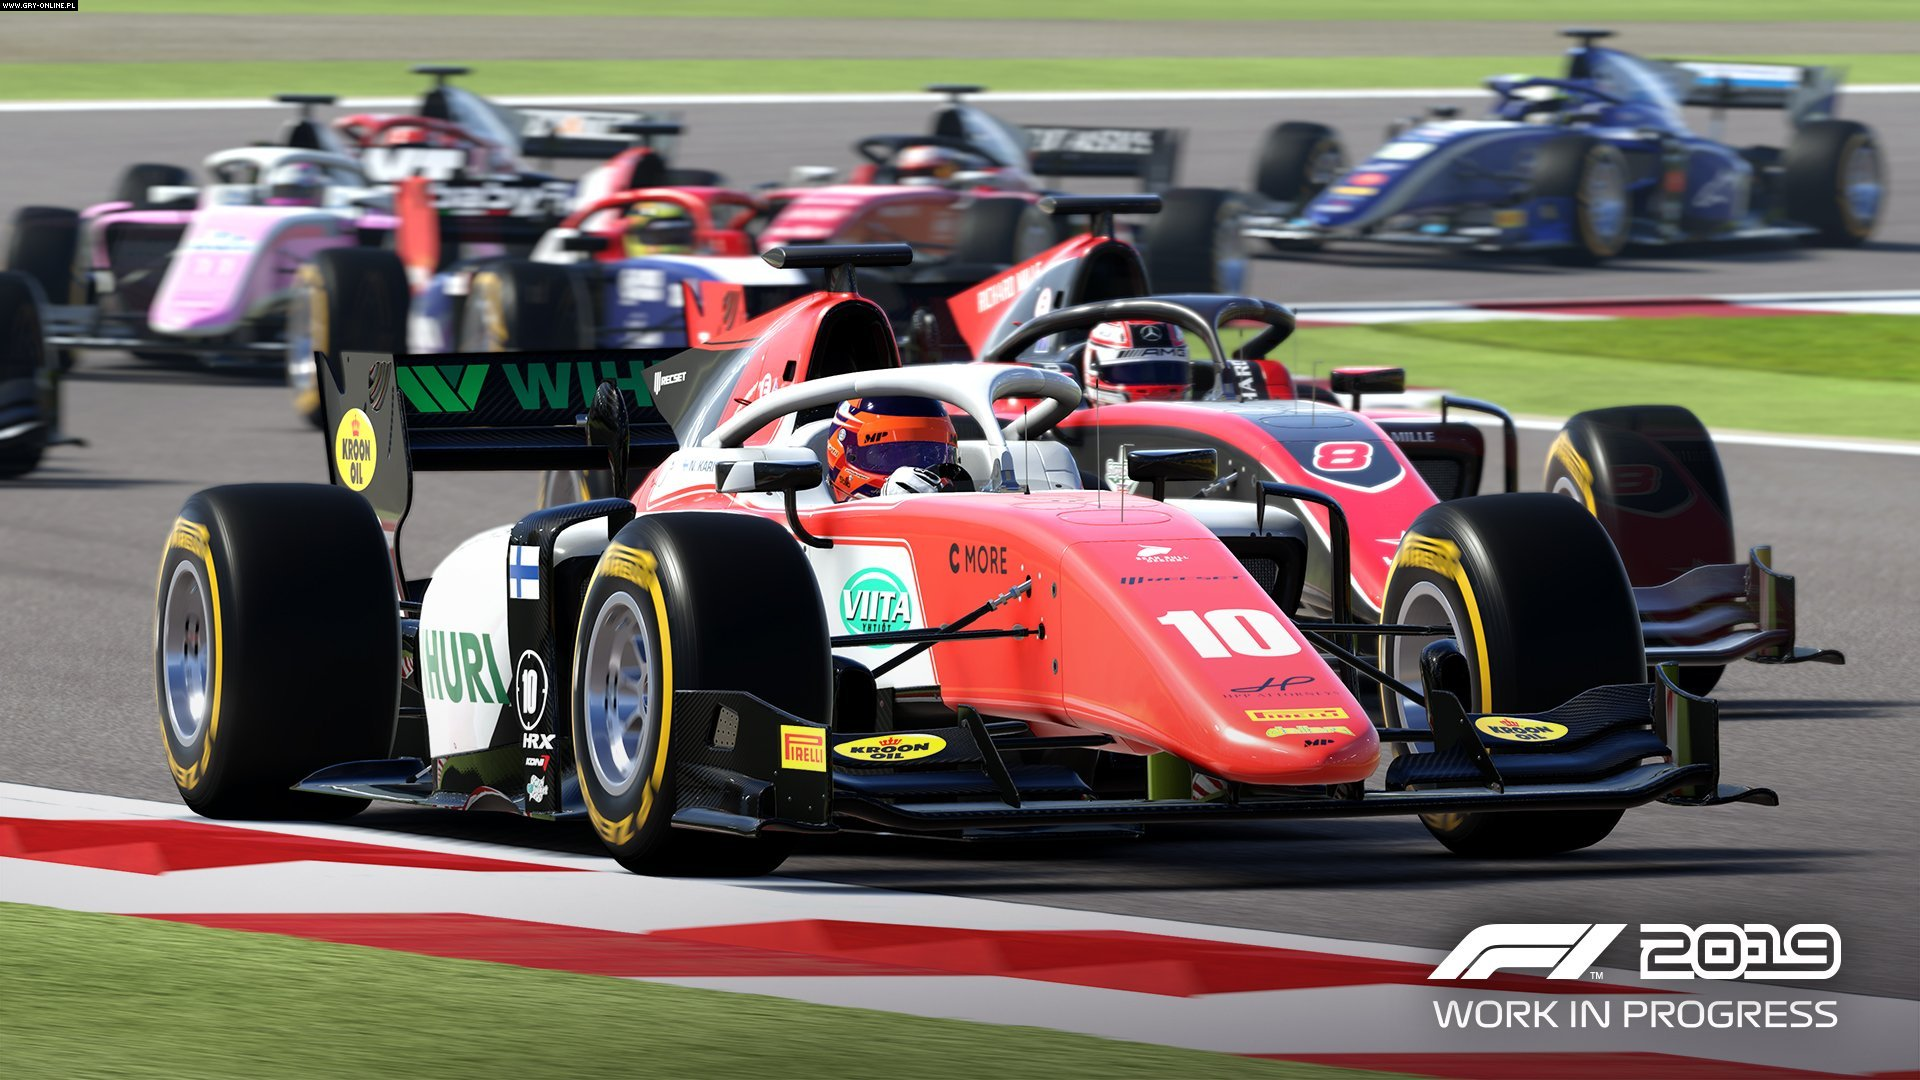 F1 2019 PC, PS4, XONE Games Image 27/62, Codemasters Software